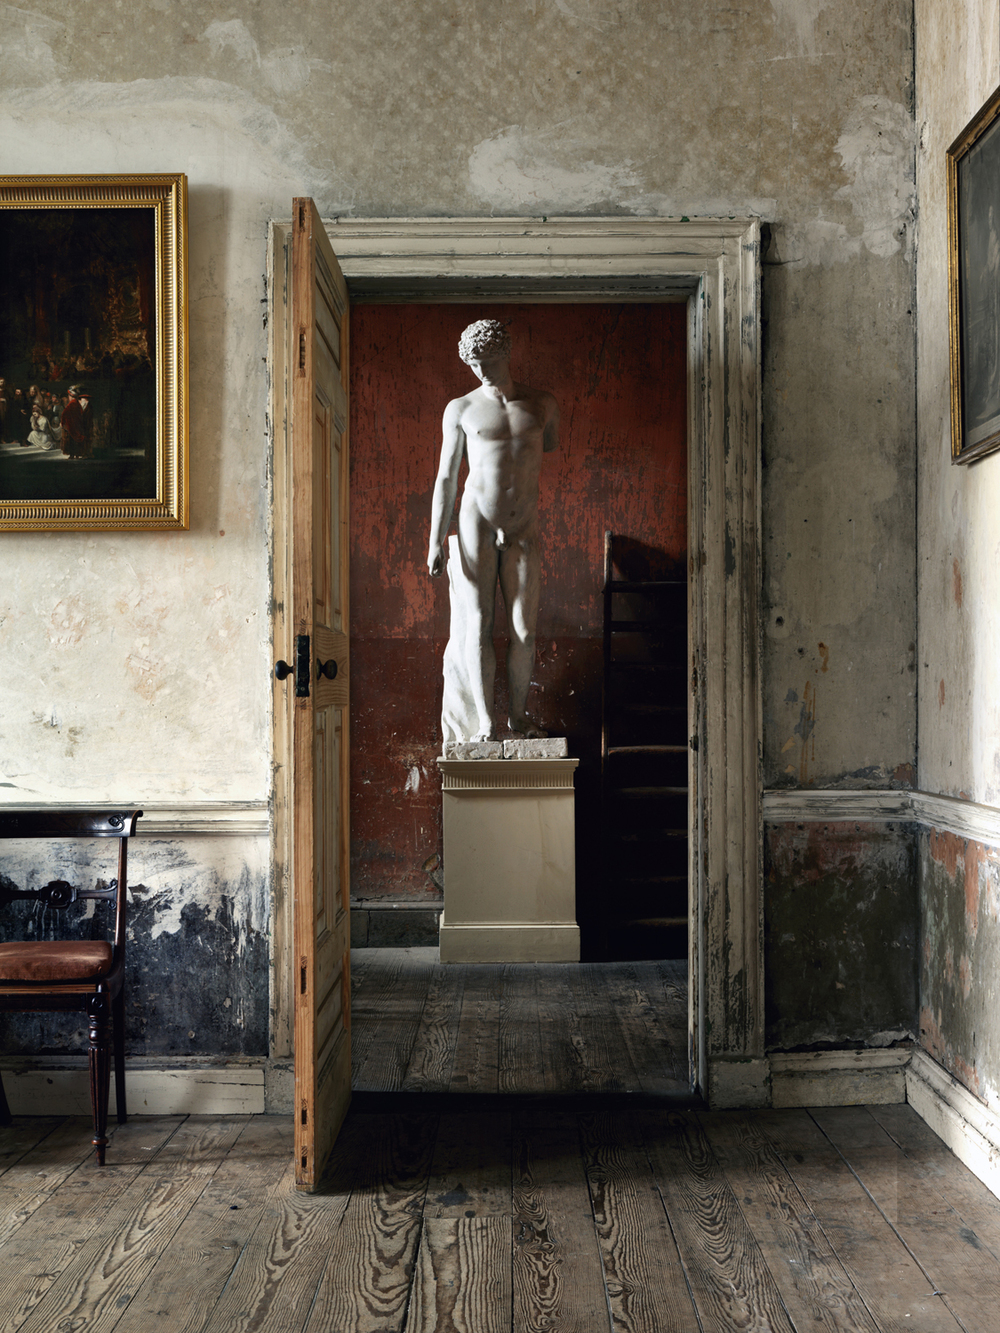 09o_RIH_StatueThroughDoorway,Ireland.jpg